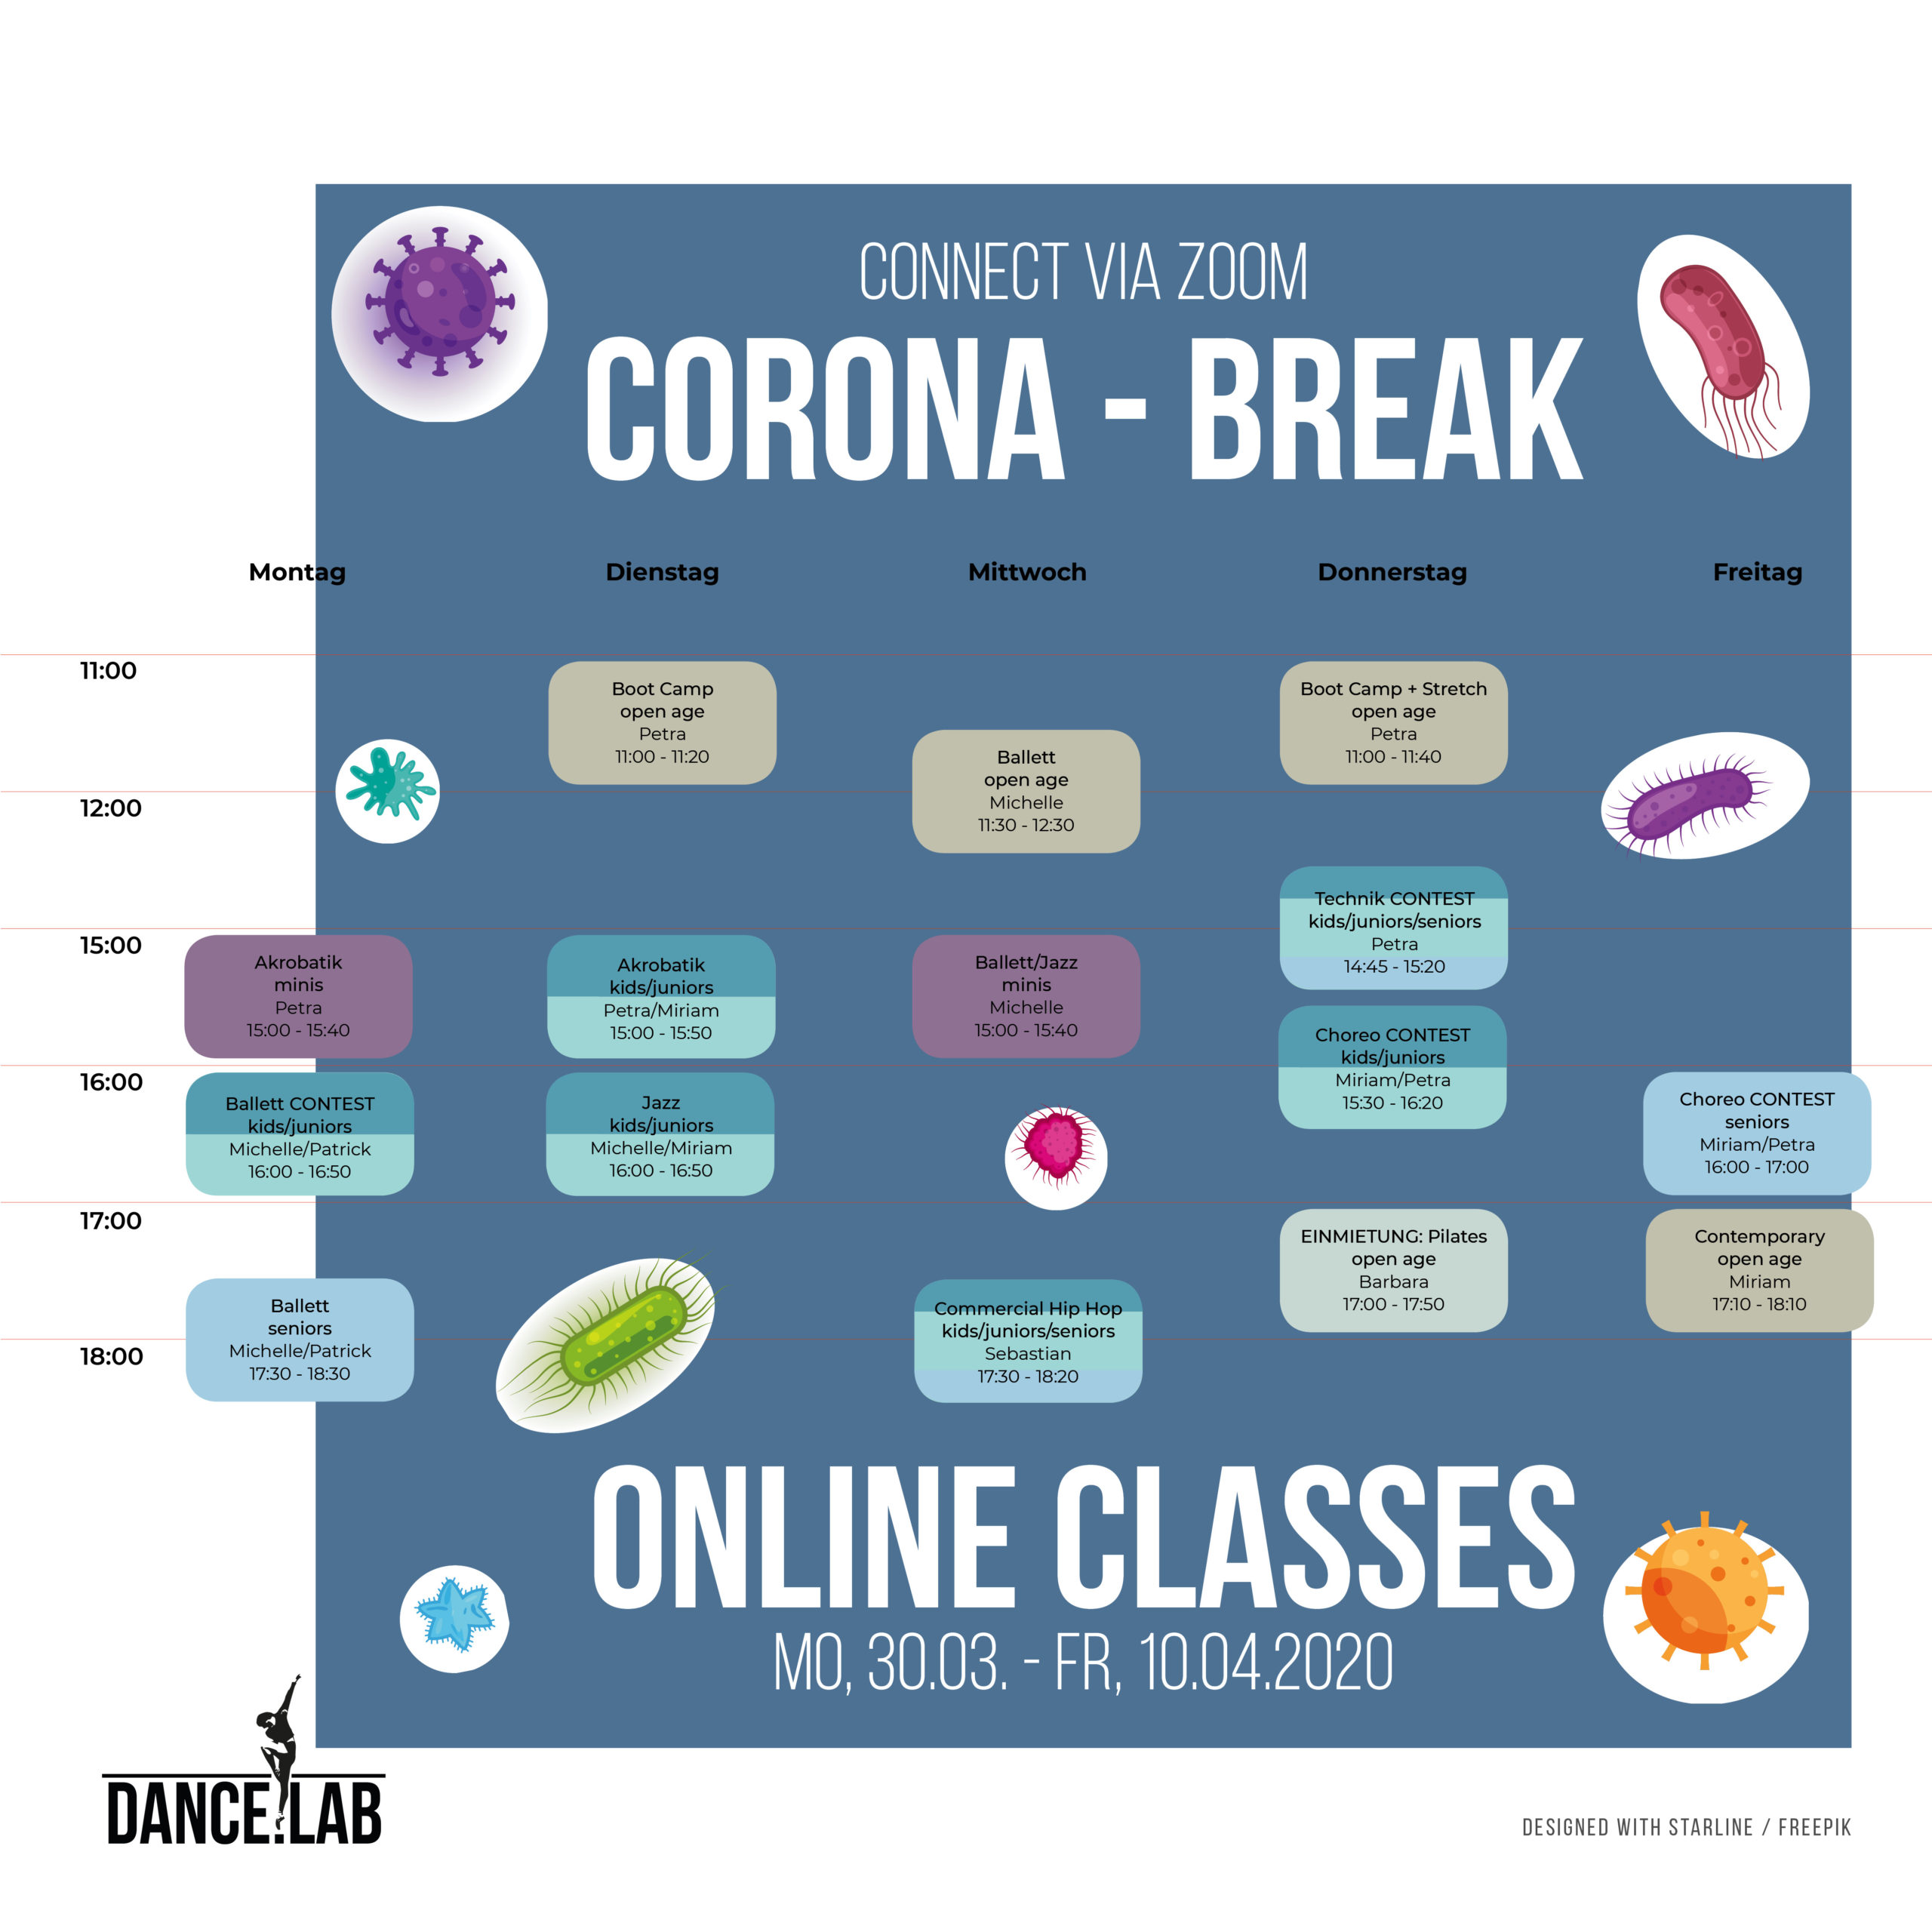 Corona Break - Online Classes